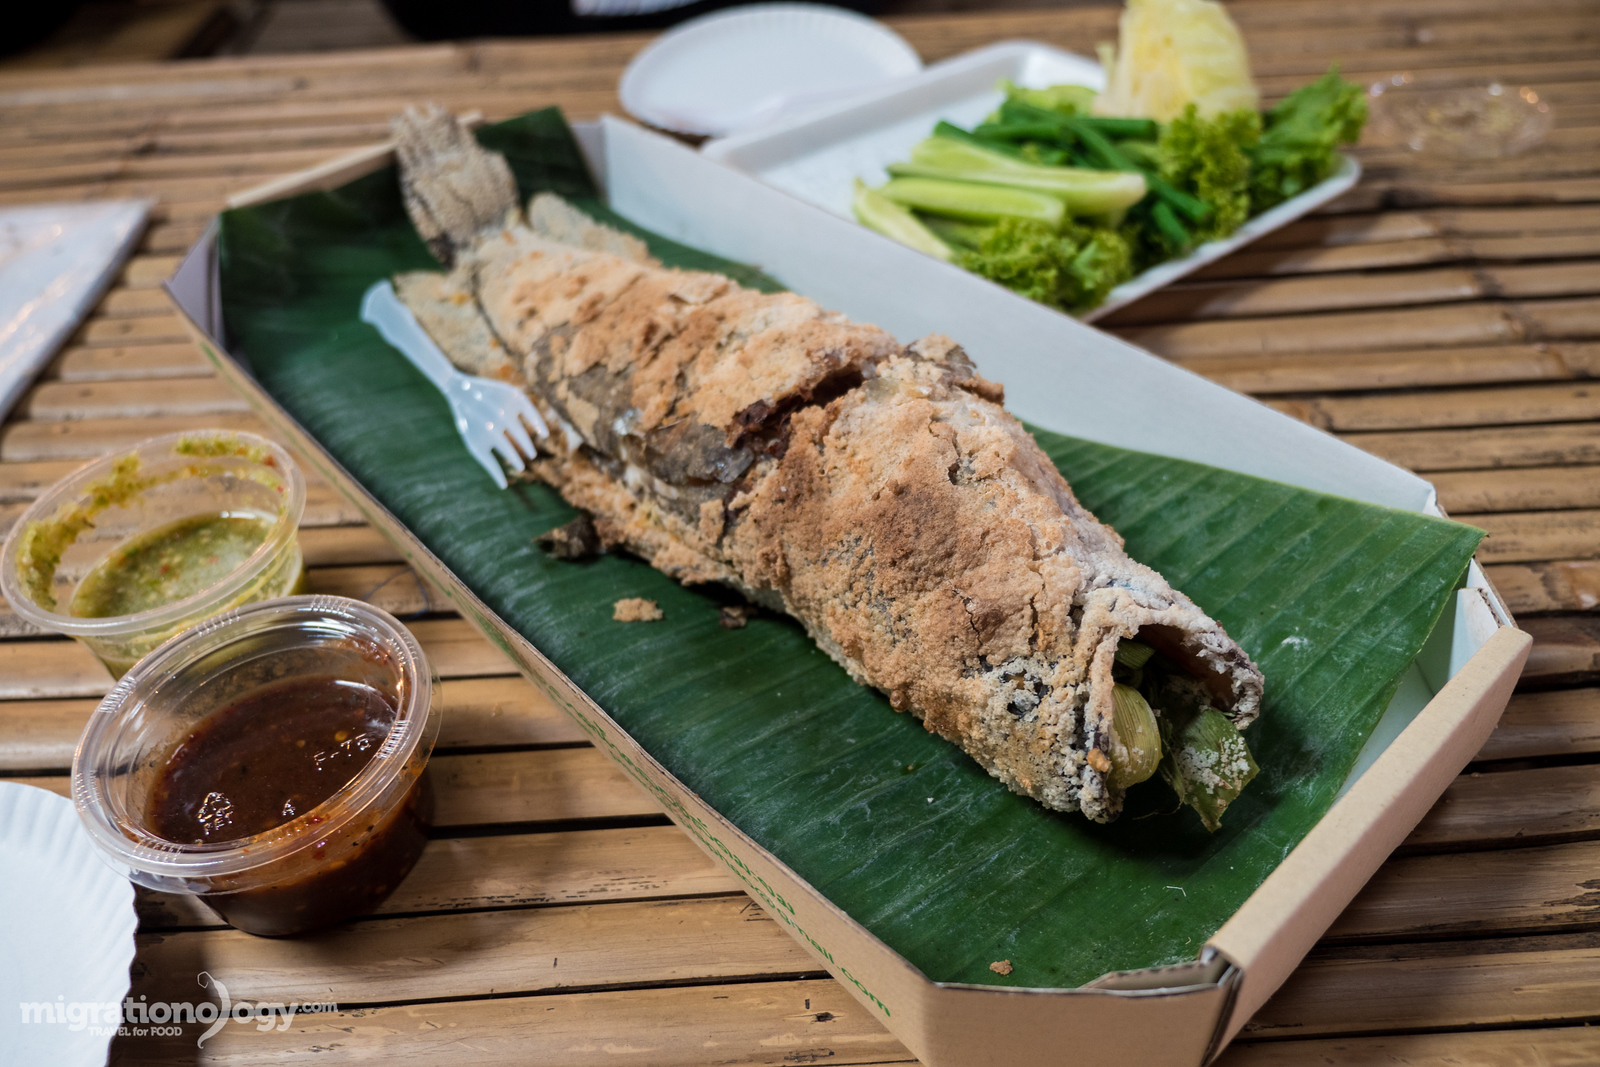 grilled snakehead fish (ปลาช่อนเผา)